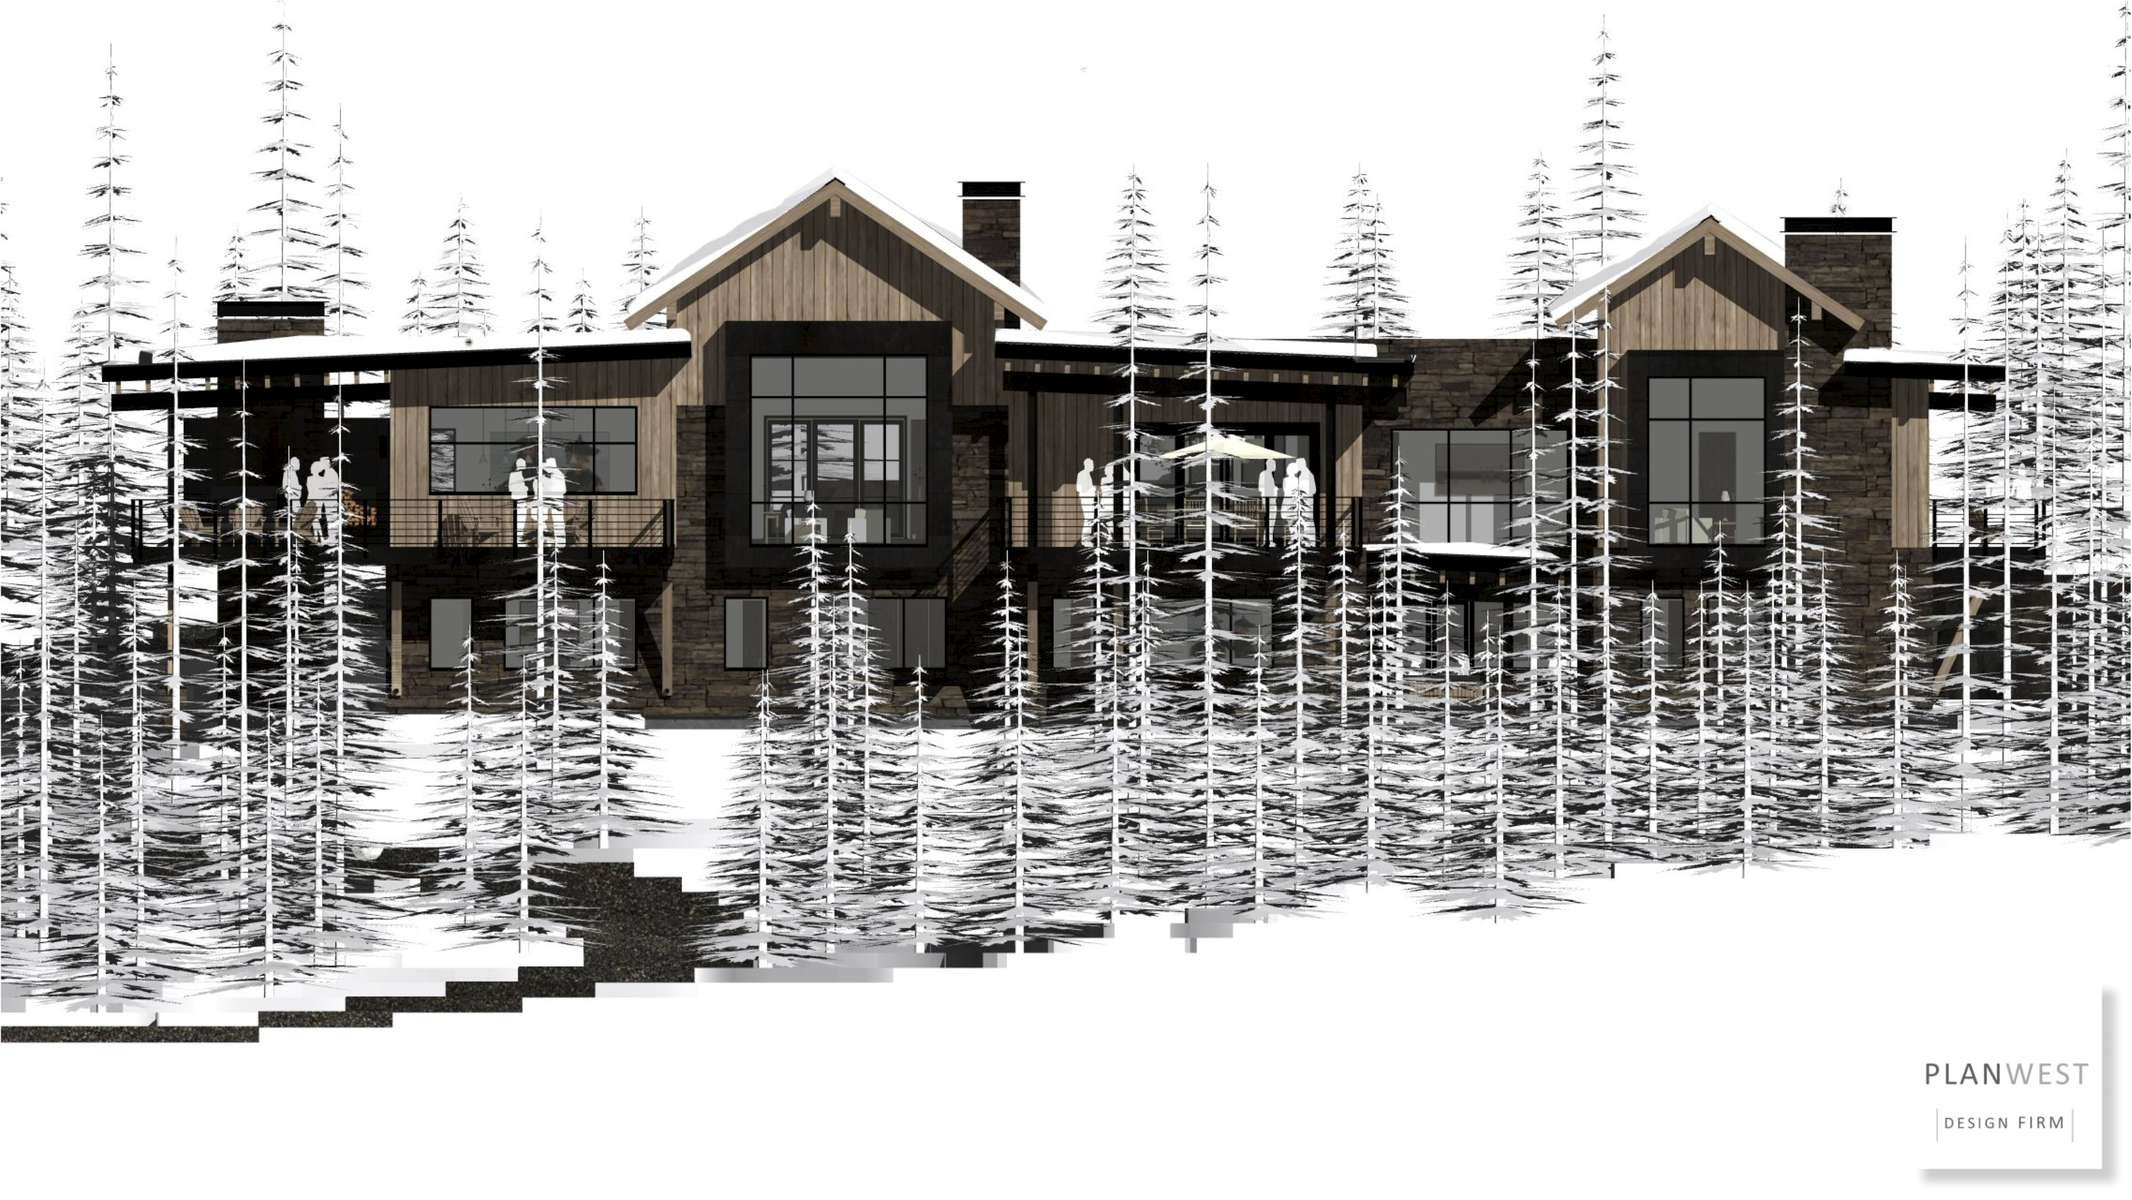 Plan-West-Design-Firm_Projects-in-process-1540